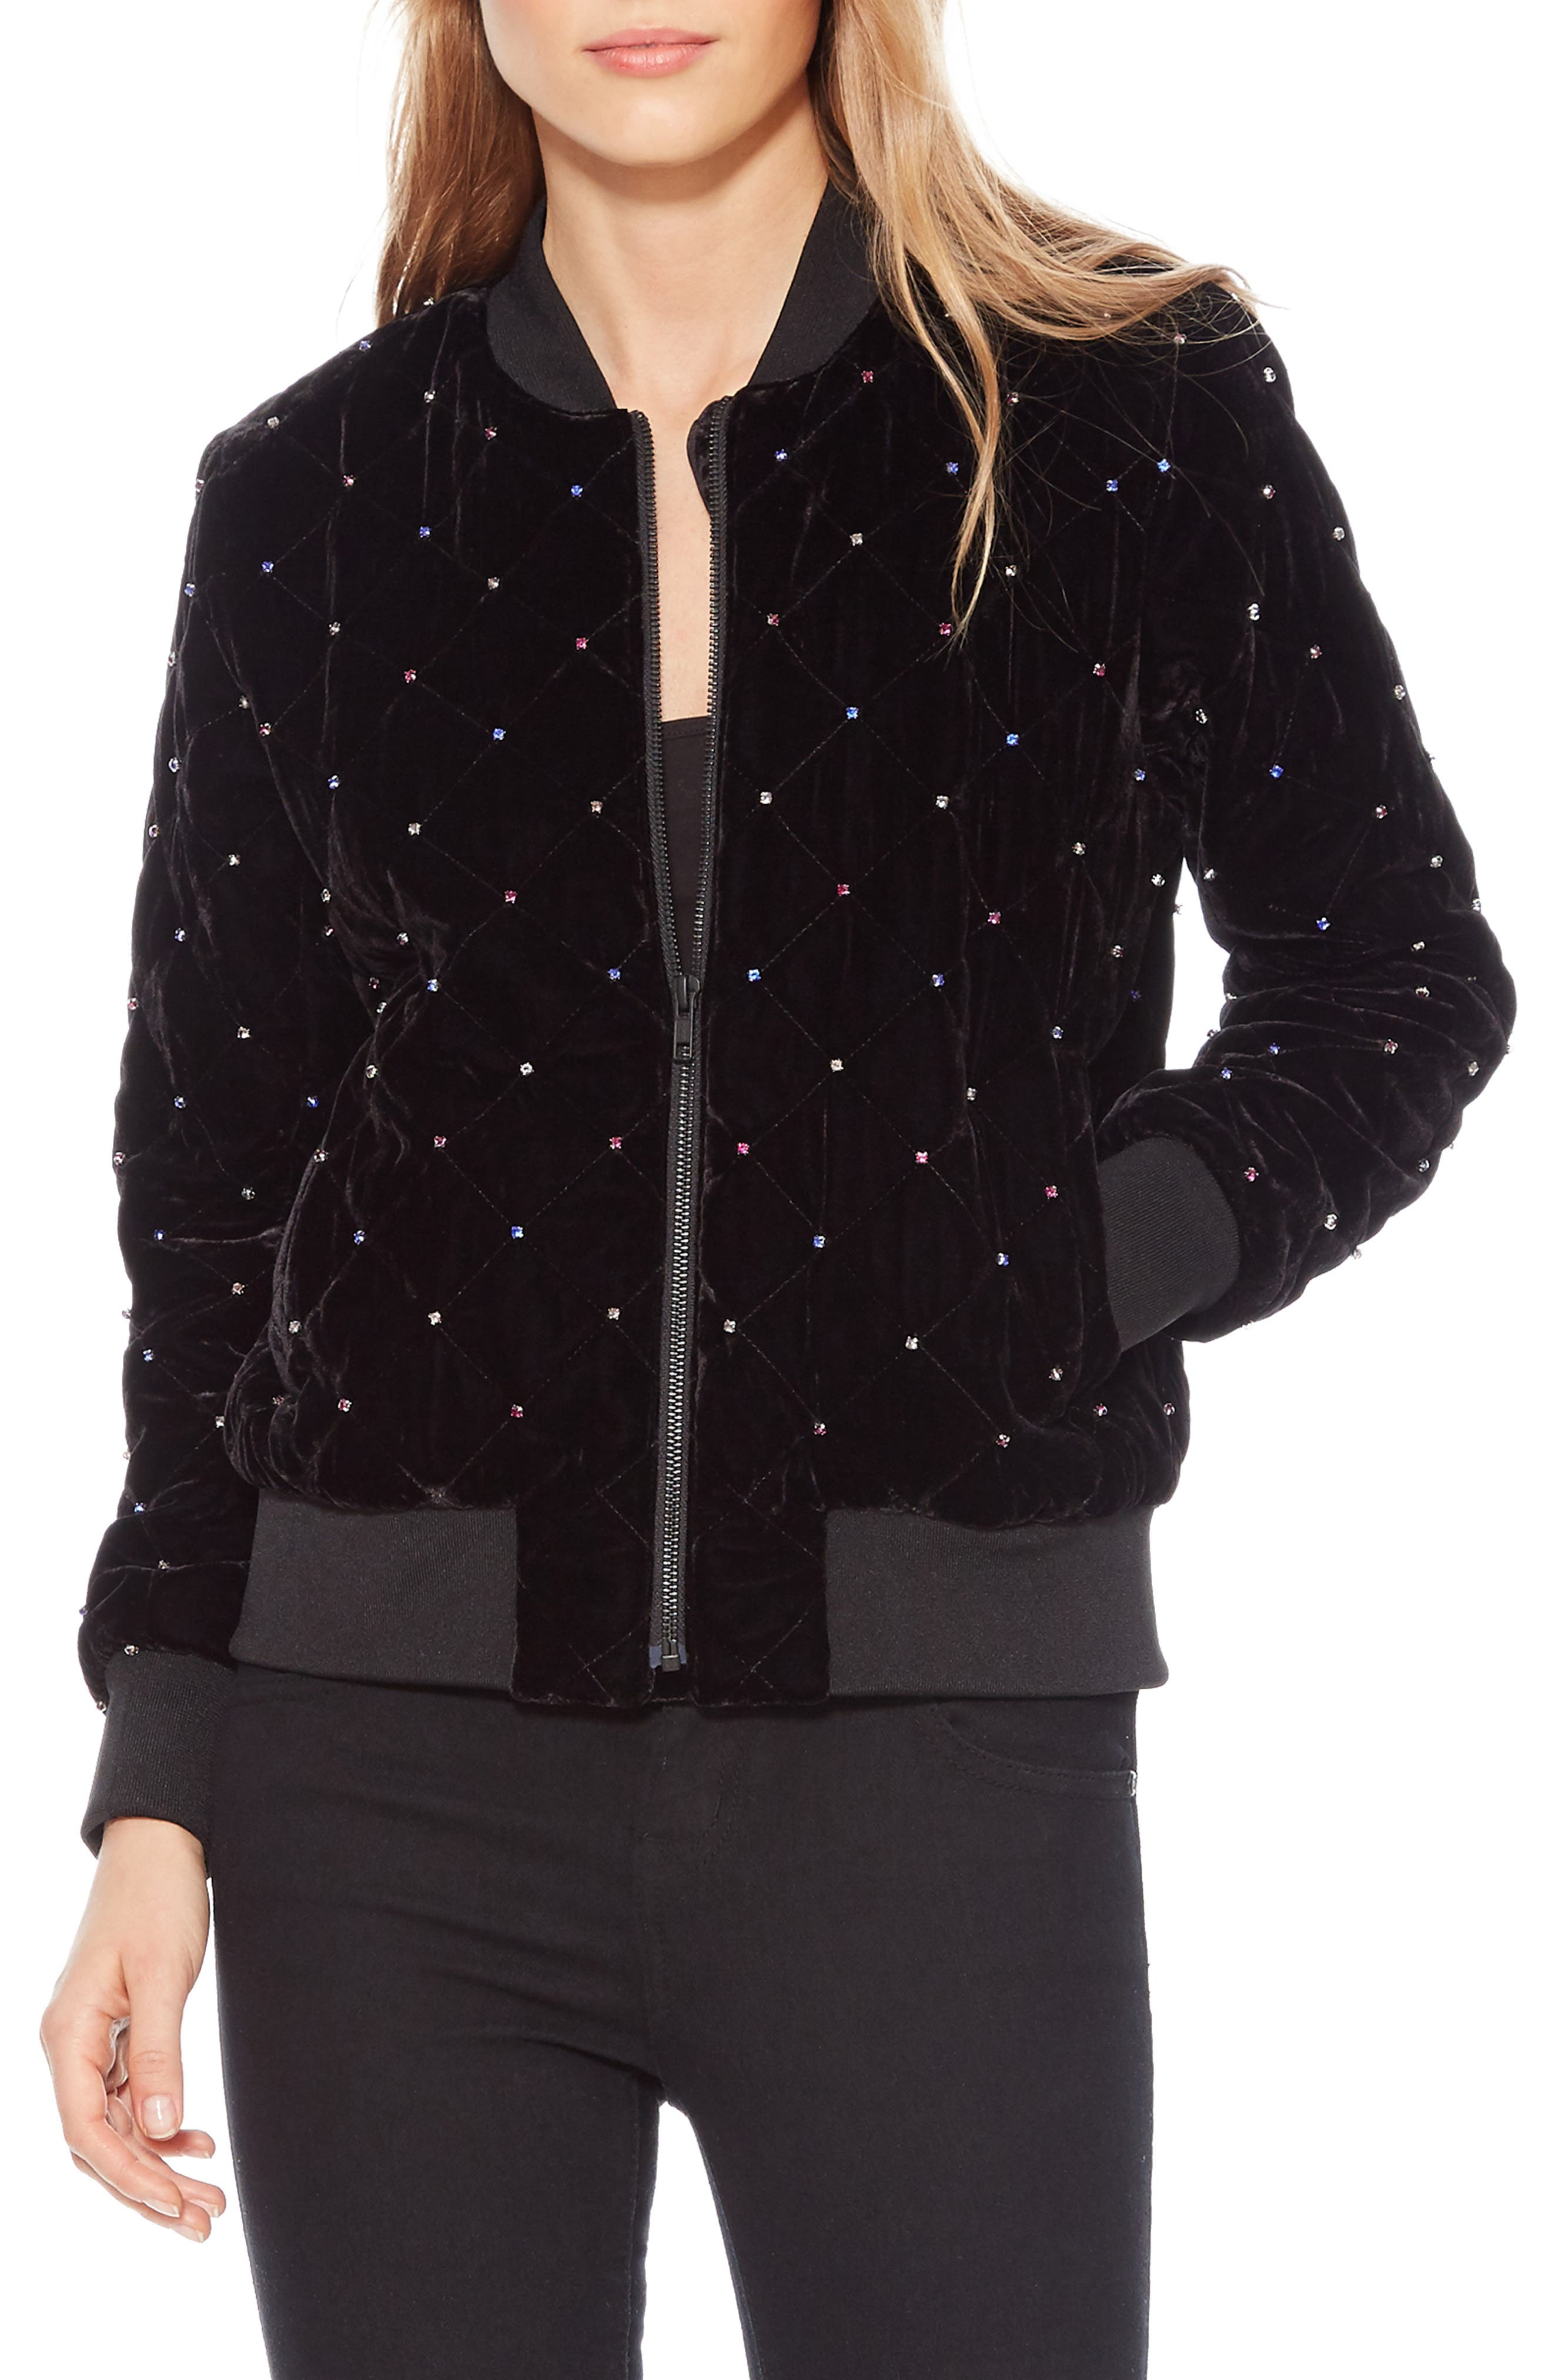 Meredith Velvet Bomber Jacket,                             Main thumbnail 1, color,                             BLACK